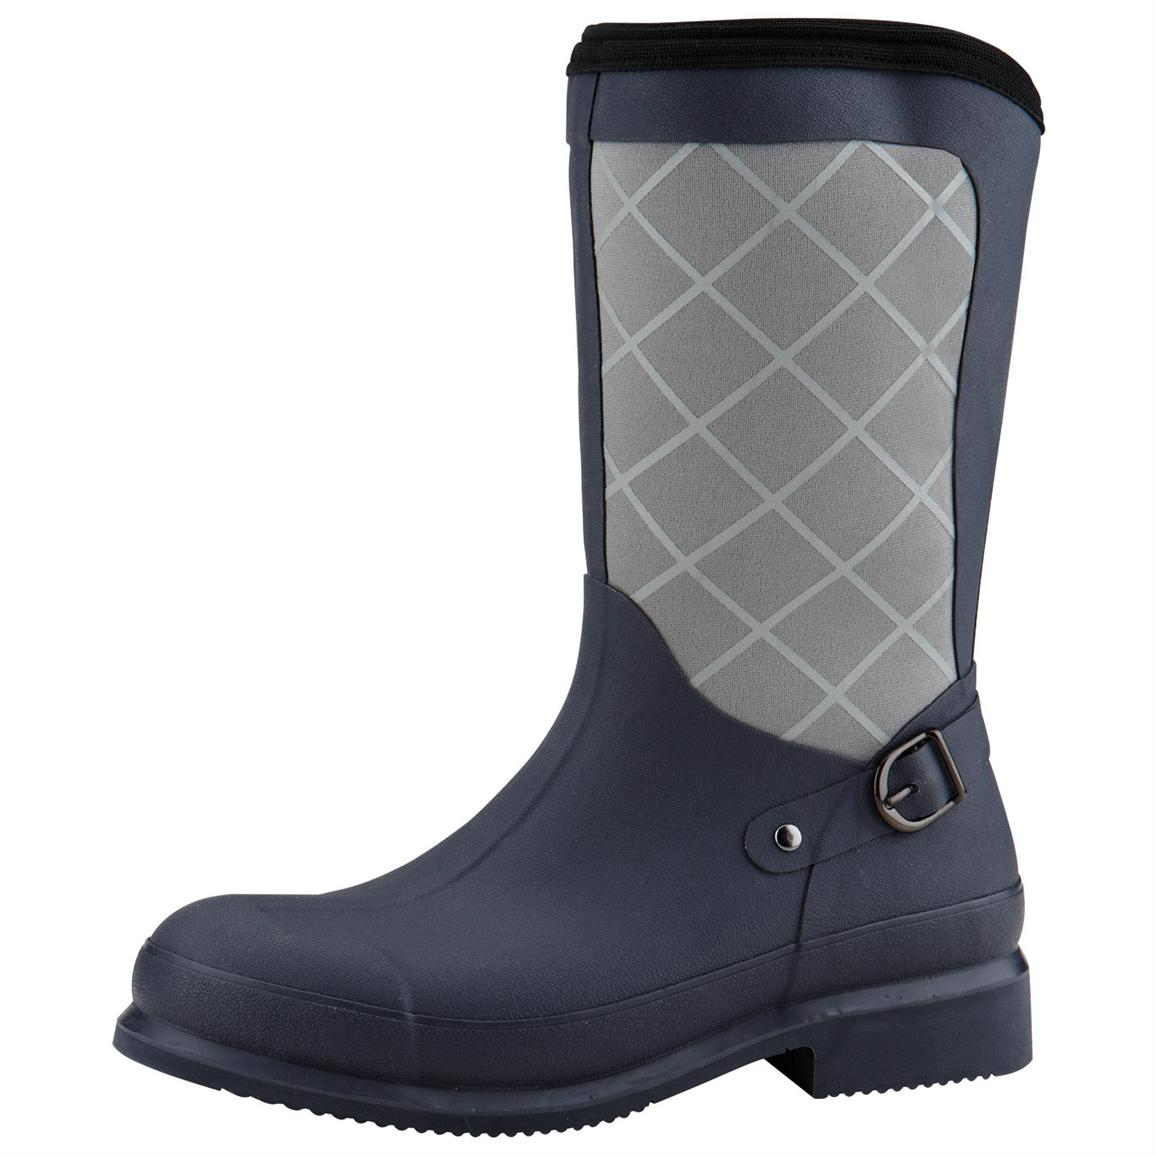 Women's Muck® Boots Pacy Mid Equestrian Boots, Navy / Gray